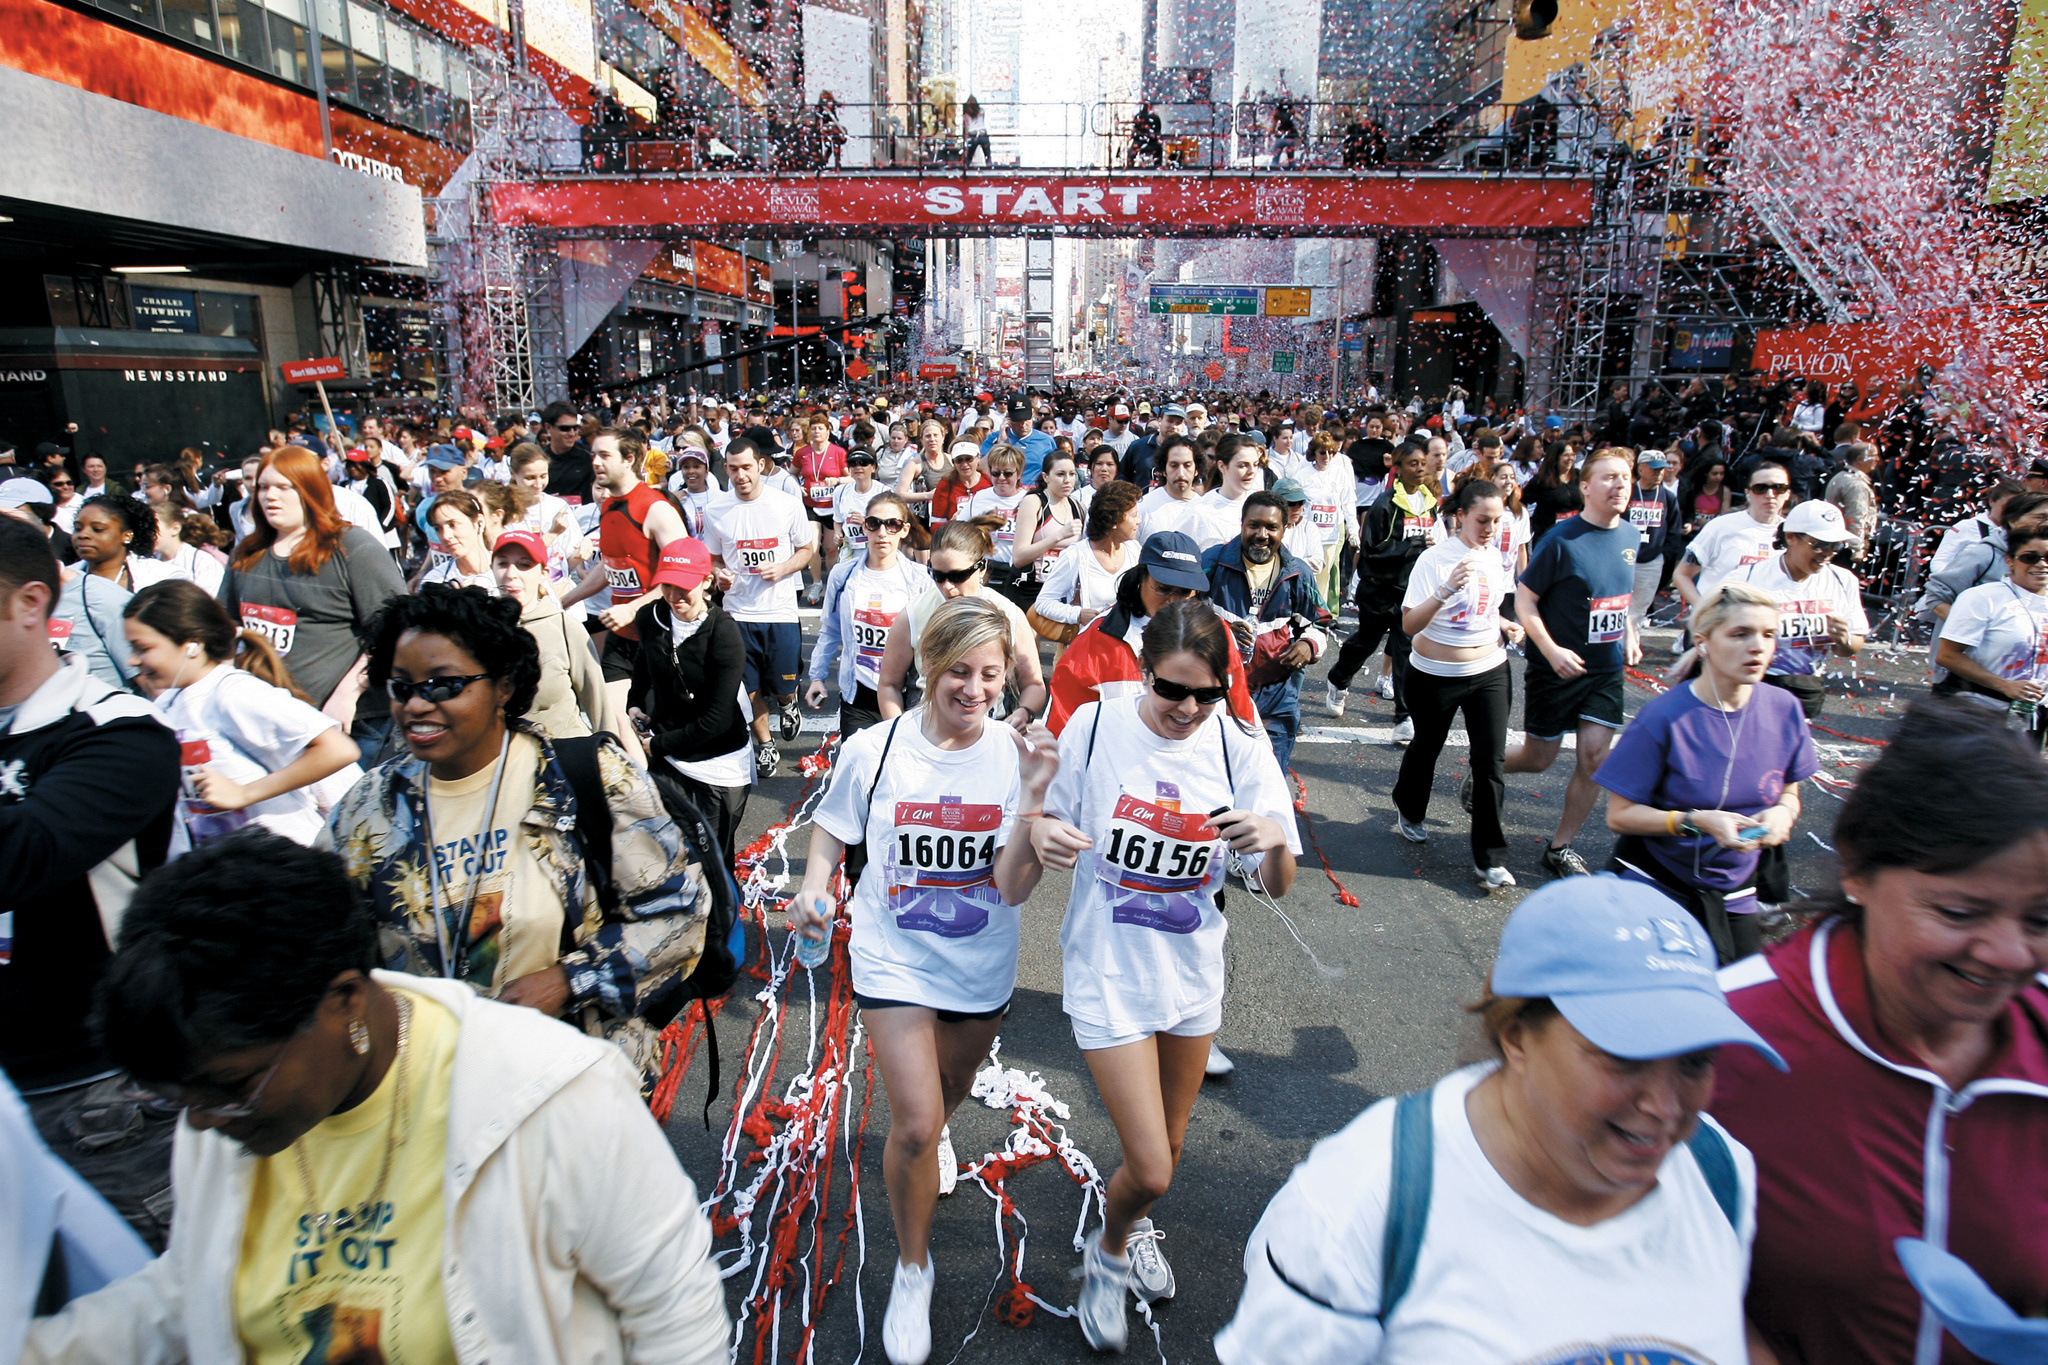 Pound the pavement to fight cancer